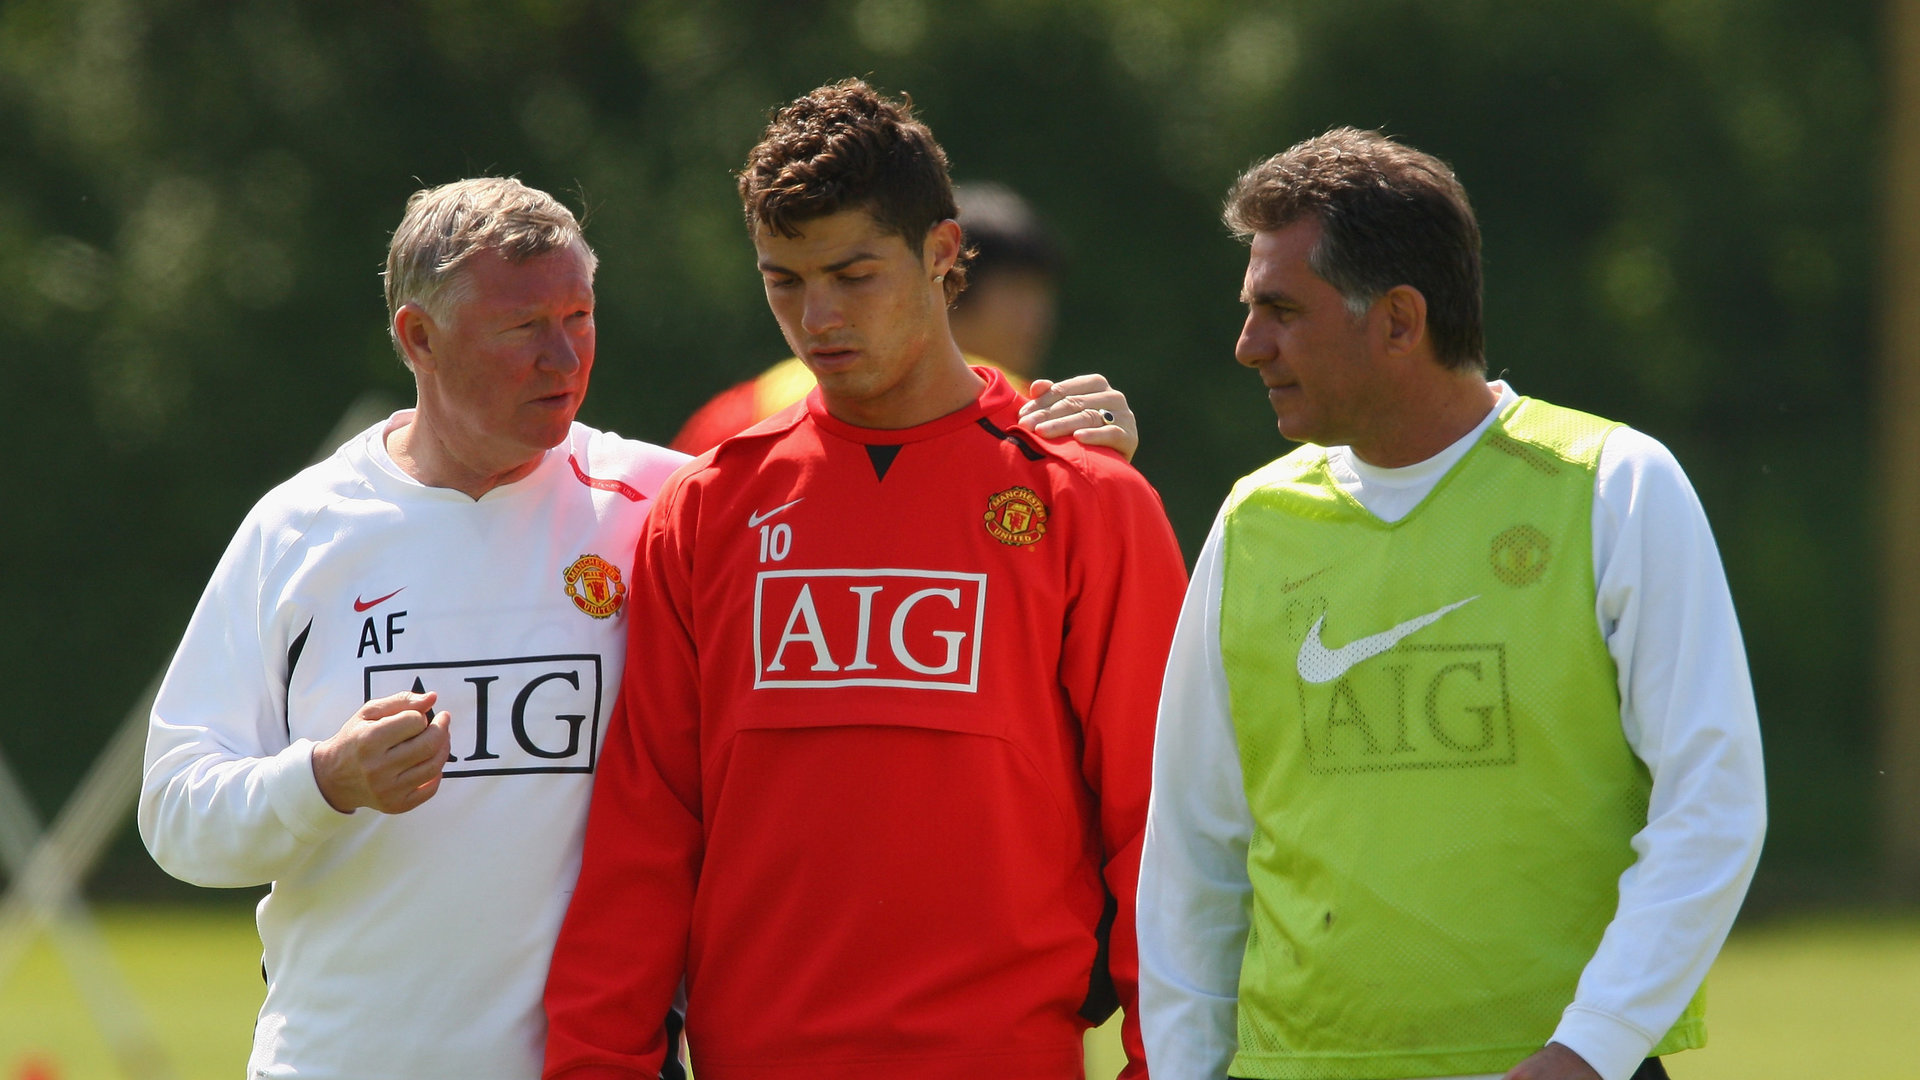 'Ronaldo was a frustrating player' - Man Utd credited for creating a superstar